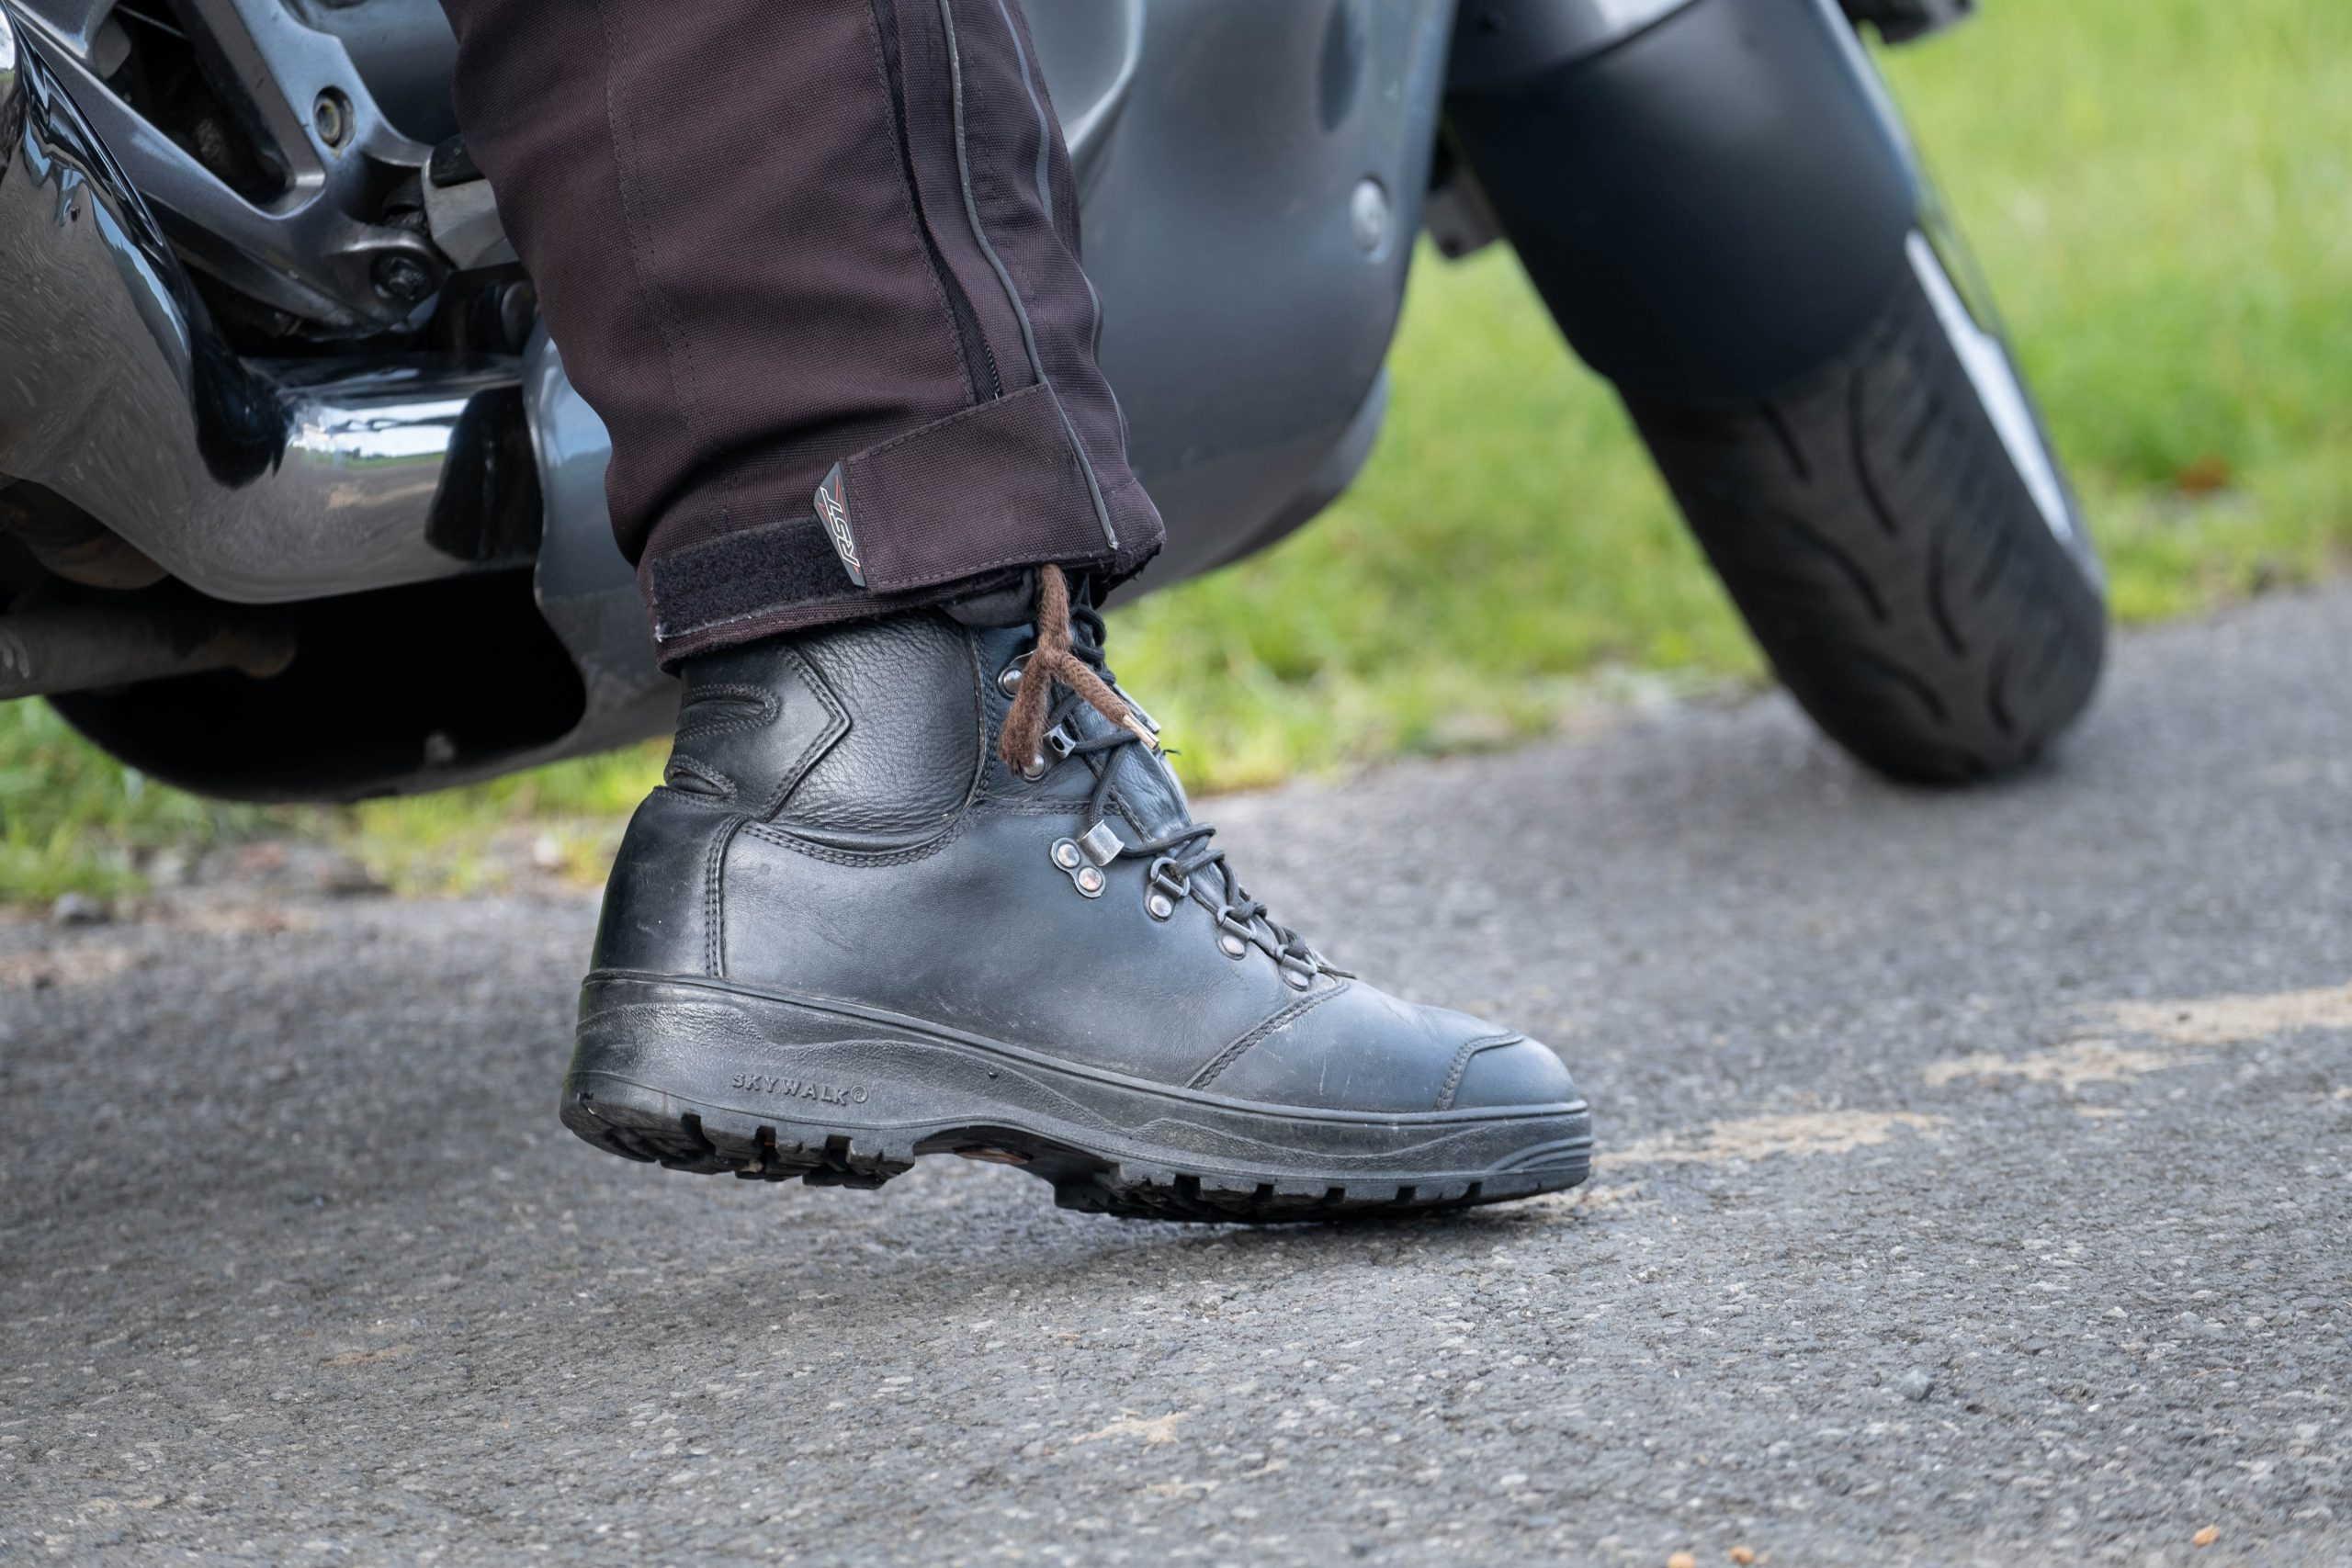 altberg motorcycle boots